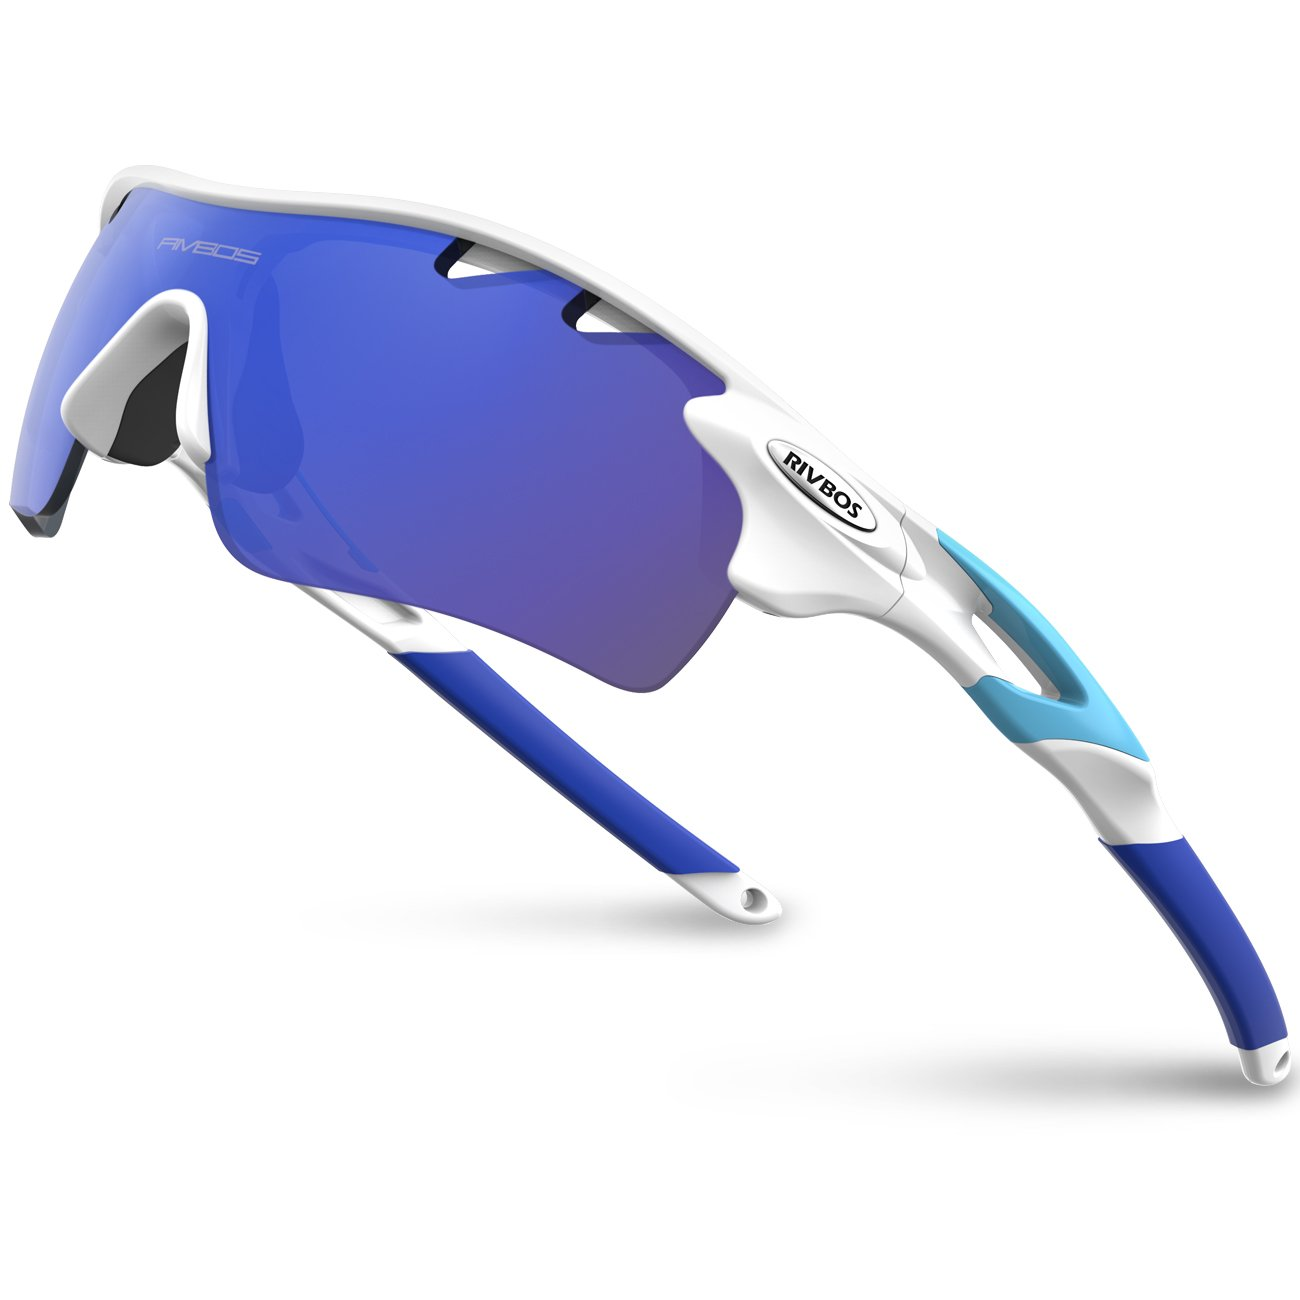 RIVBOS 801 POLARIZED Sports Sunglasses with 5 Interchangeable Lenses (White&Blue) by RIVBOS